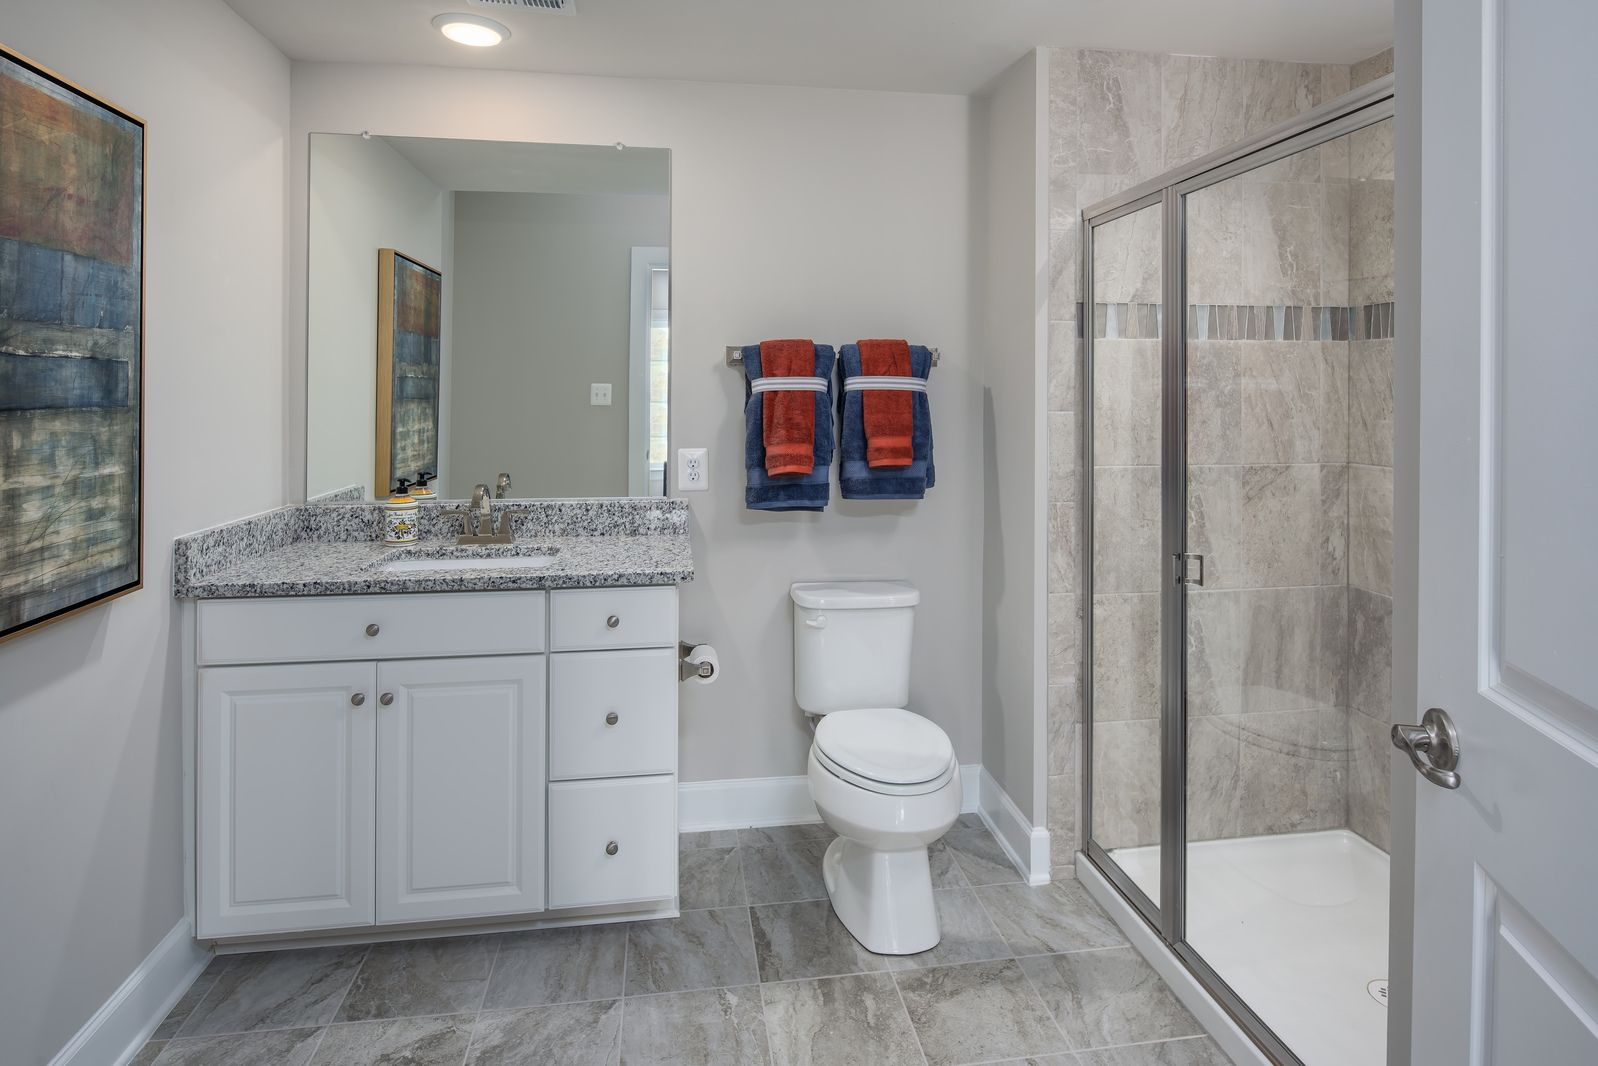 Bathroom featured in the Radford By NVHomes in Washington, VA